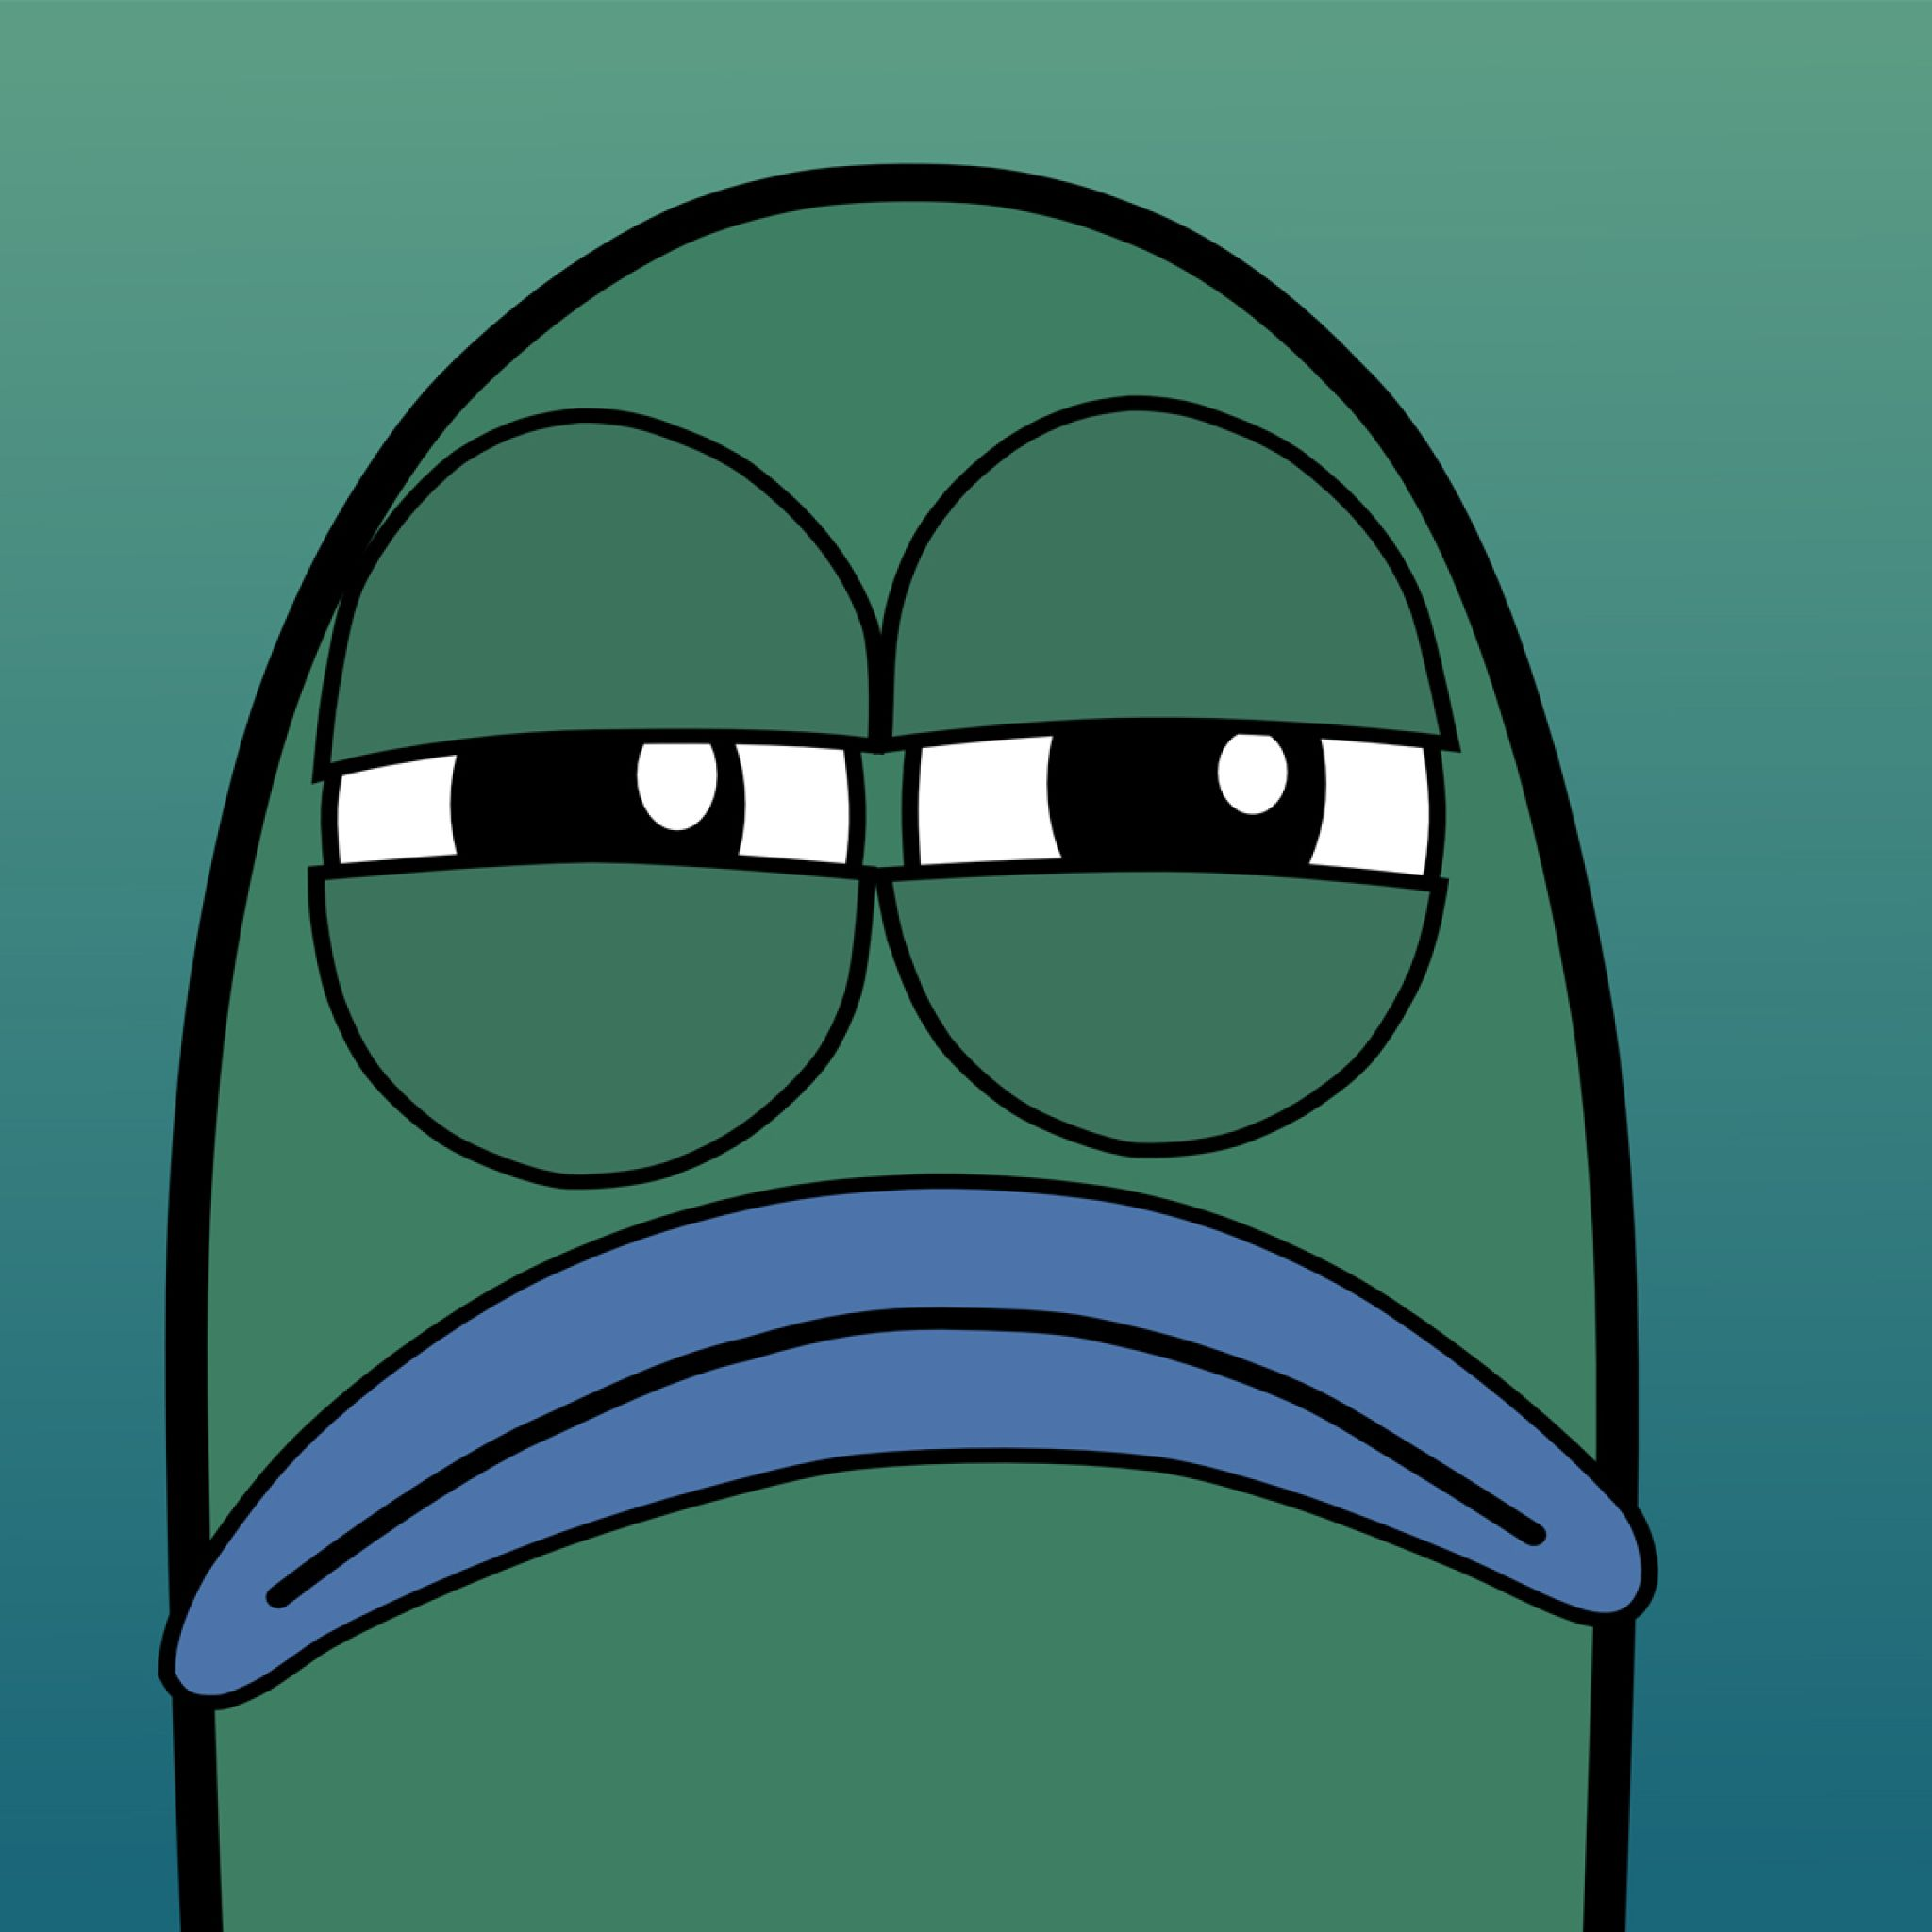 Sad Funny Cute Plankton Face! Tap to see more simple